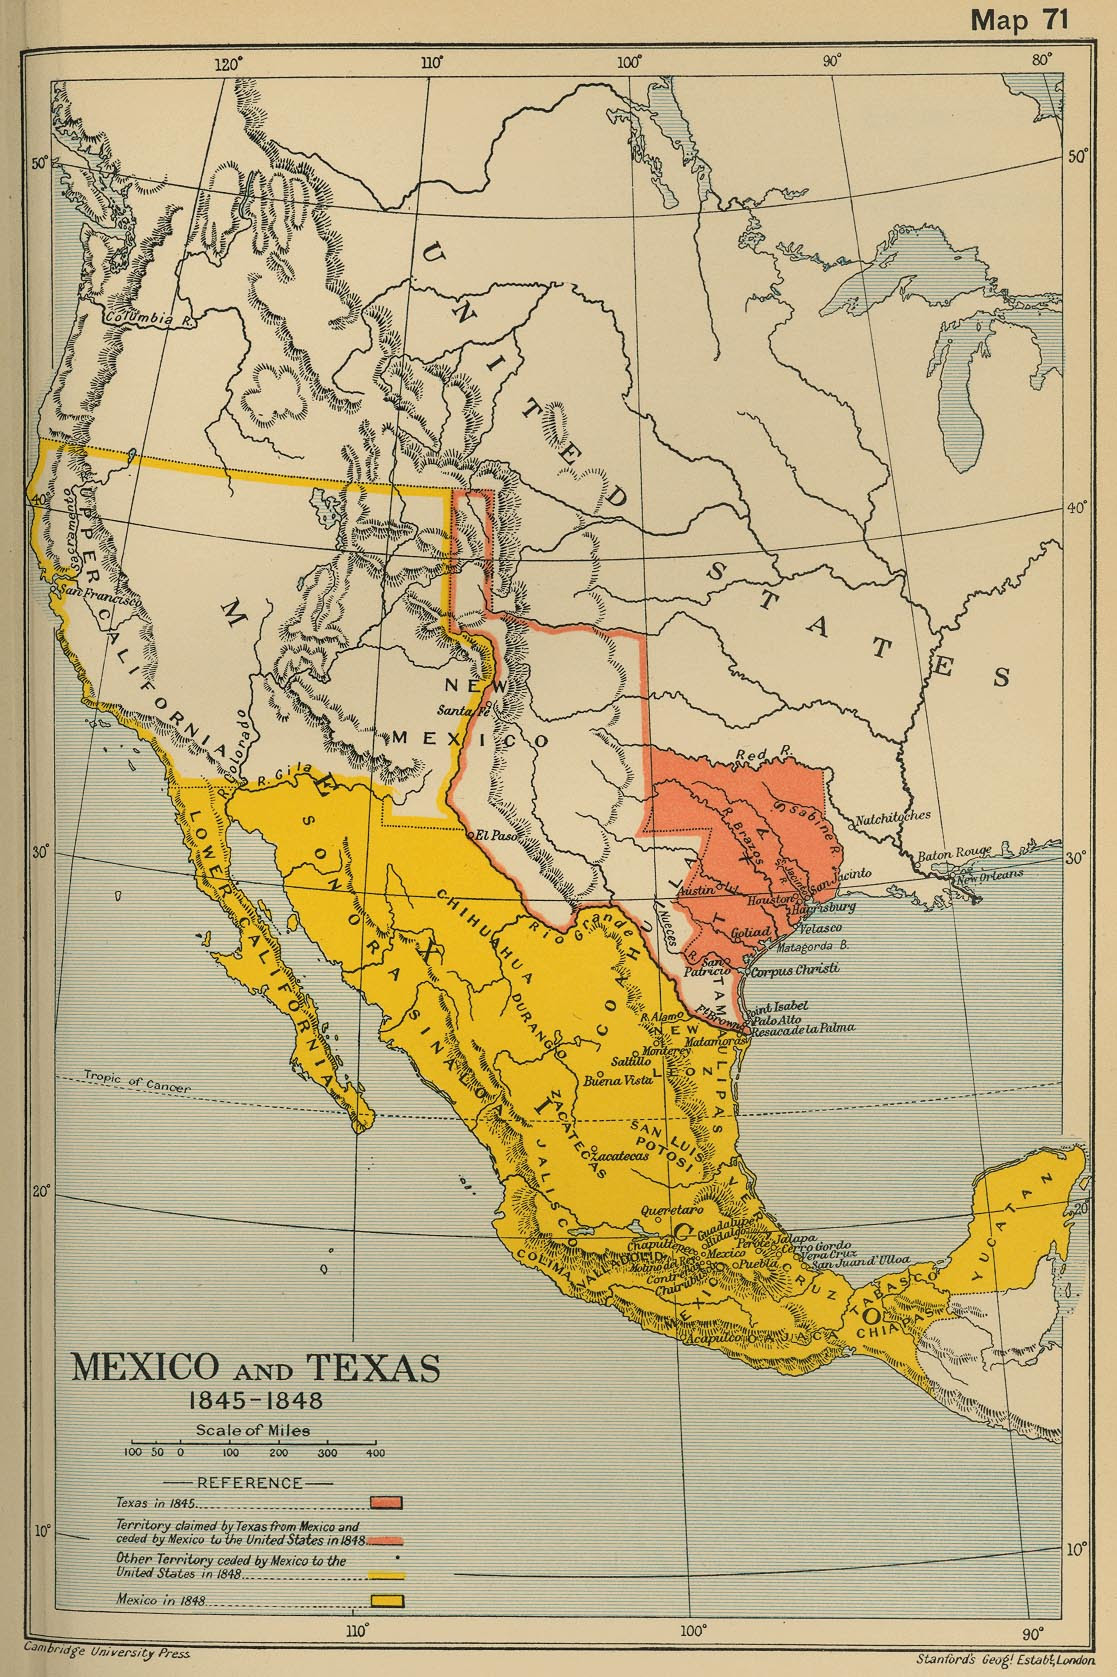 Map of Mexico and Texas 1845-1845